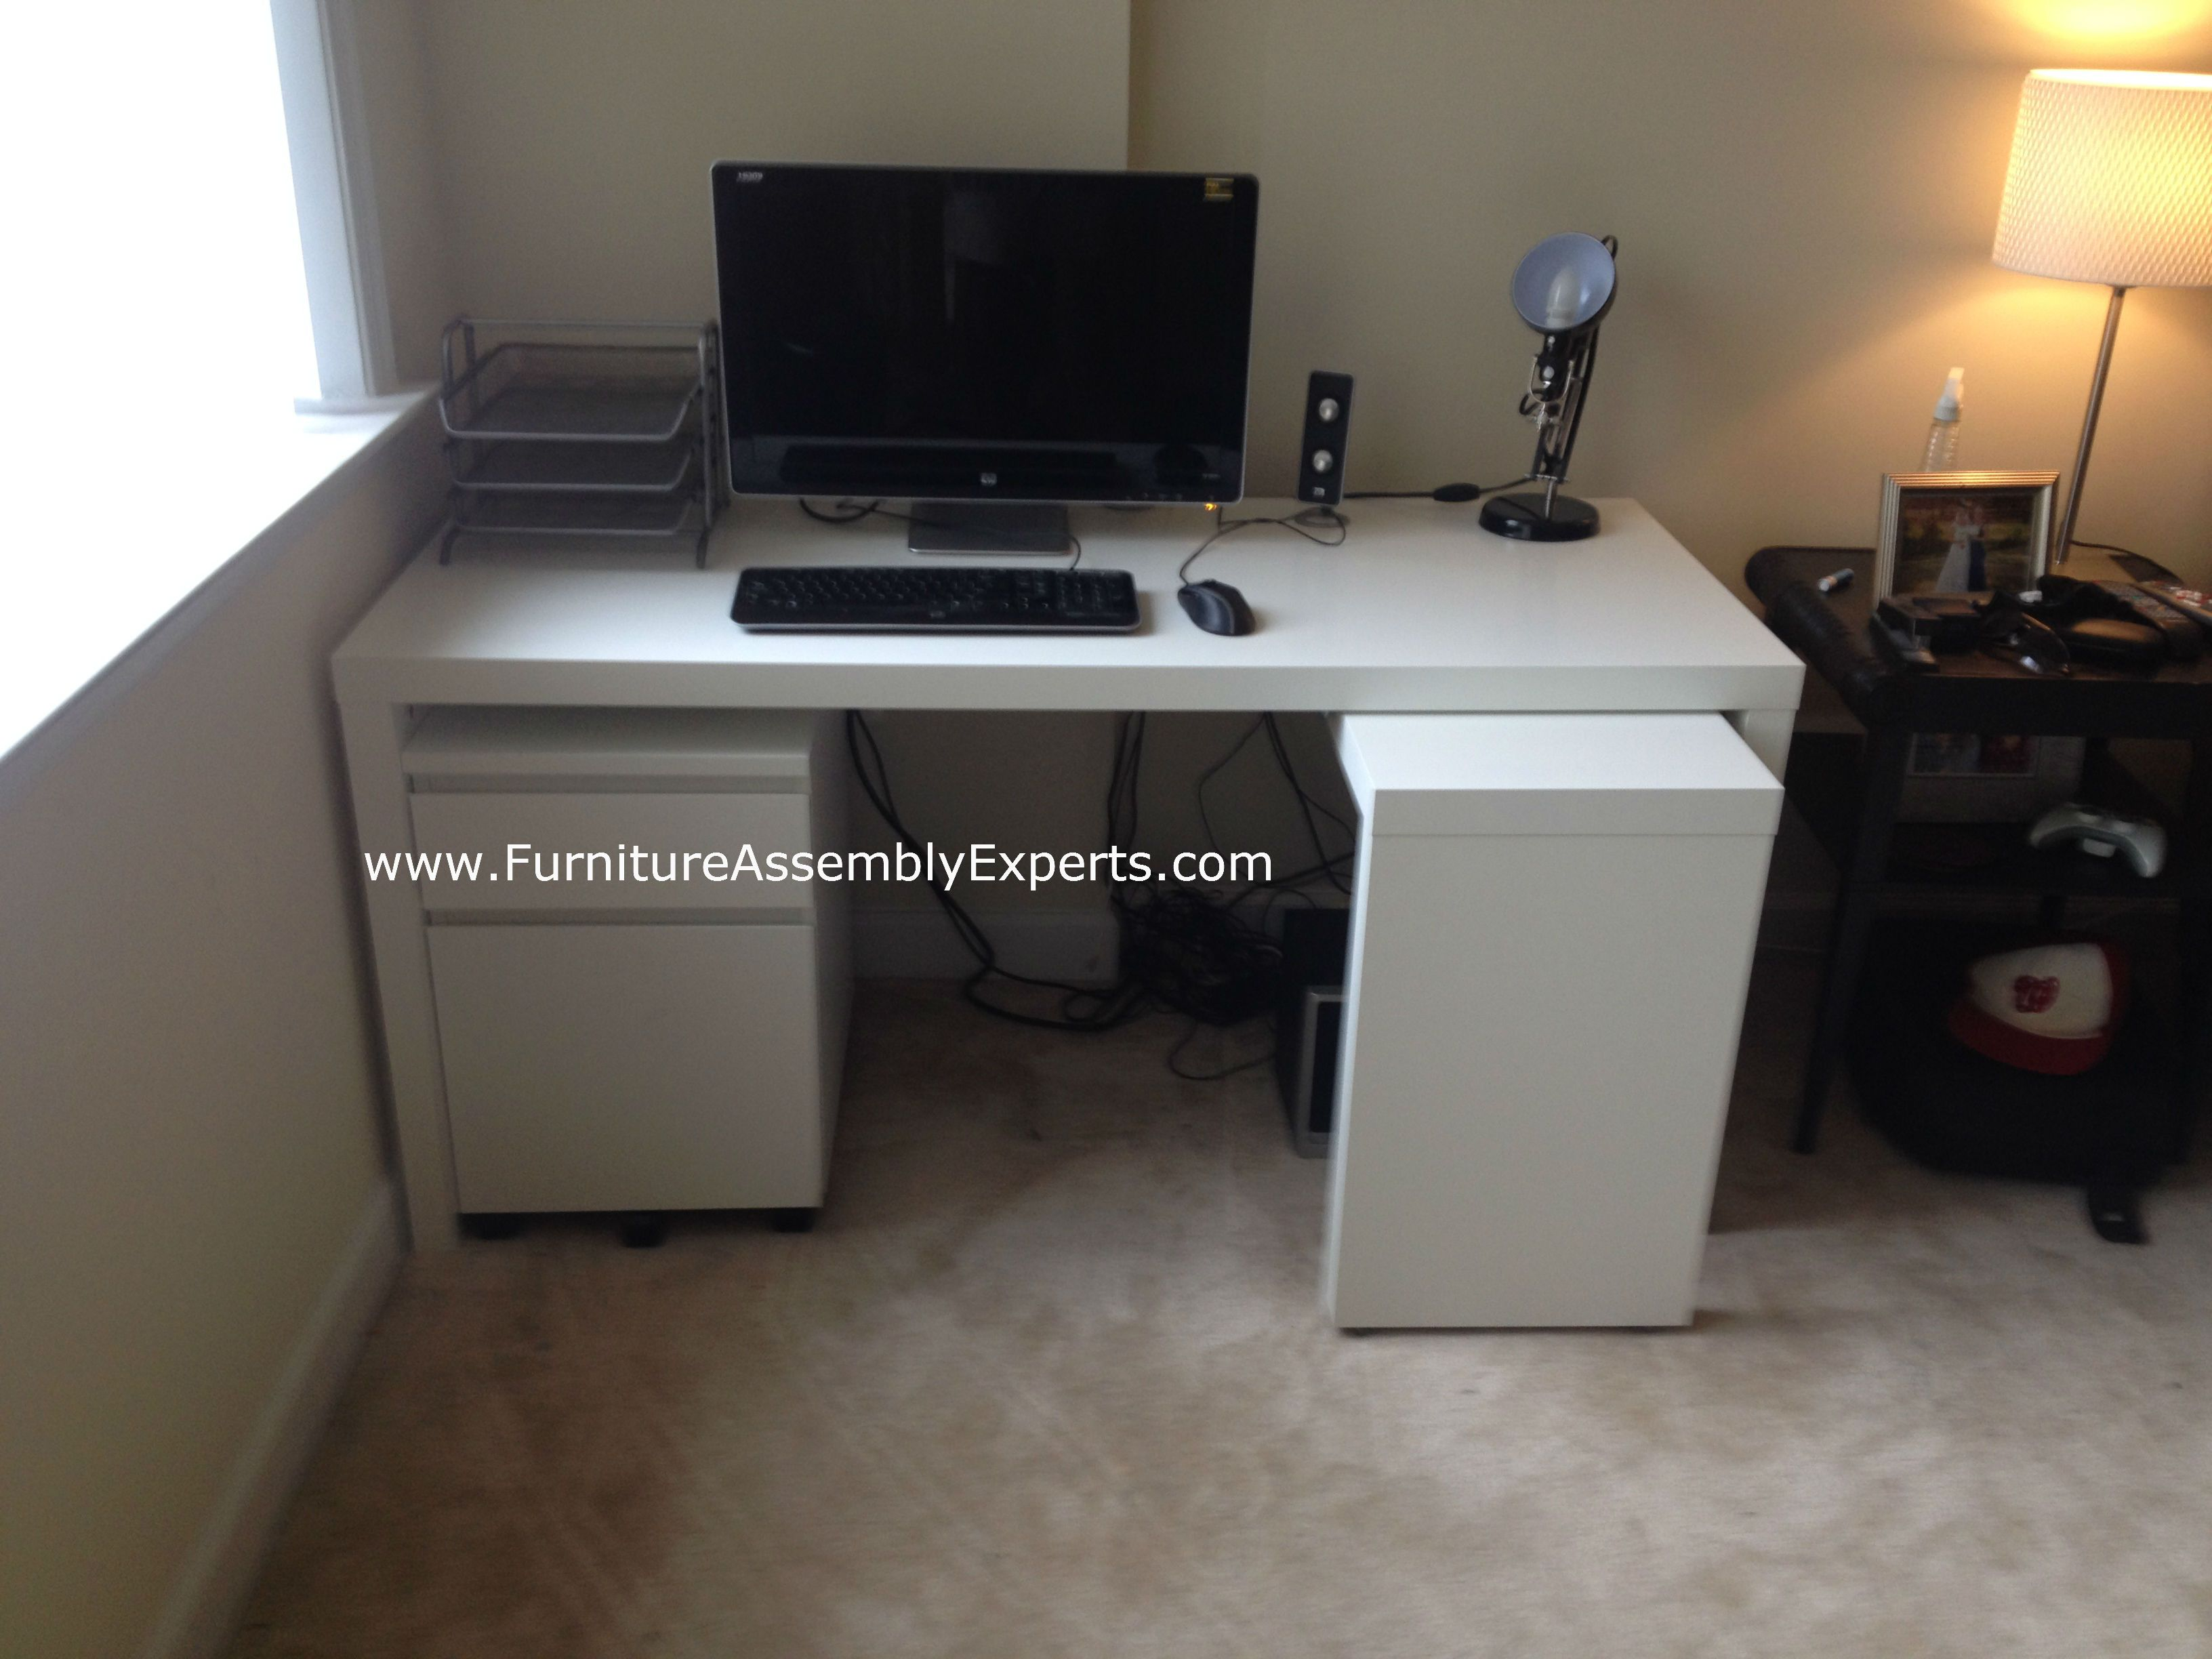 ikea malm desk assembled at quincy plaza apartments in arlington va for a customer moving in by. Black Bedroom Furniture Sets. Home Design Ideas